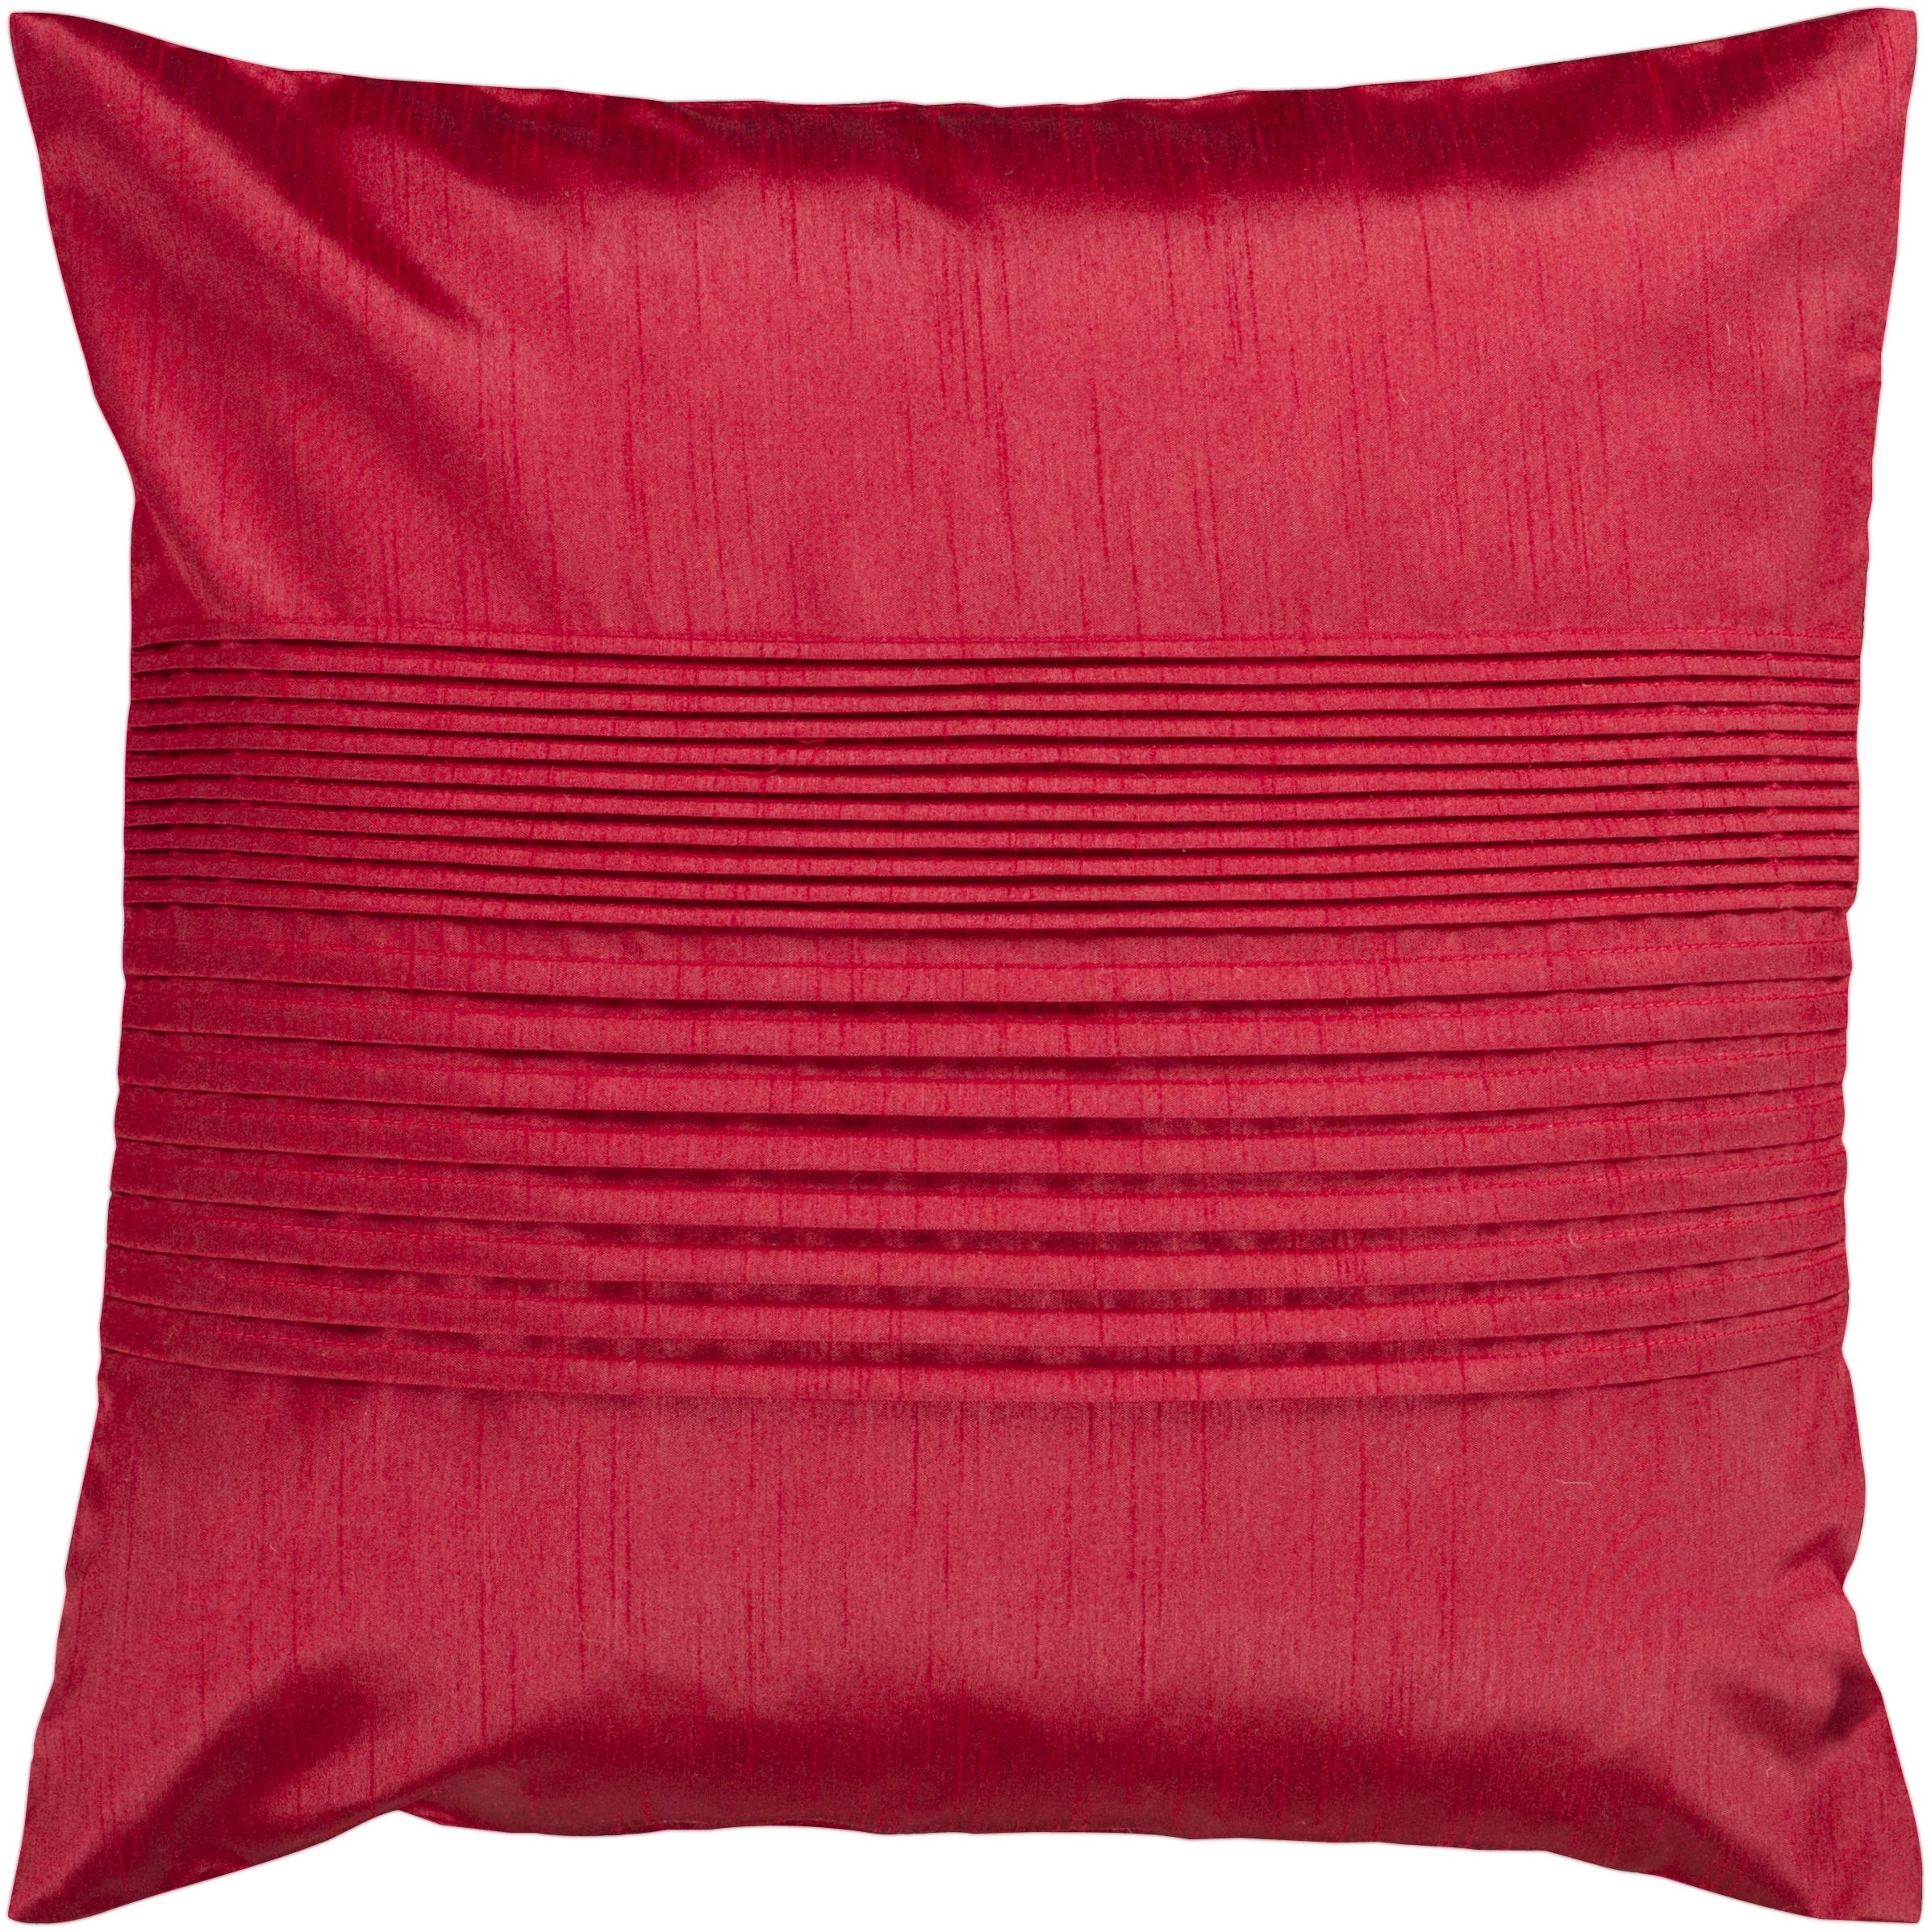 "Surya Pillows 22"" x 22"" Pillow - Item Number: HH025-2222P"